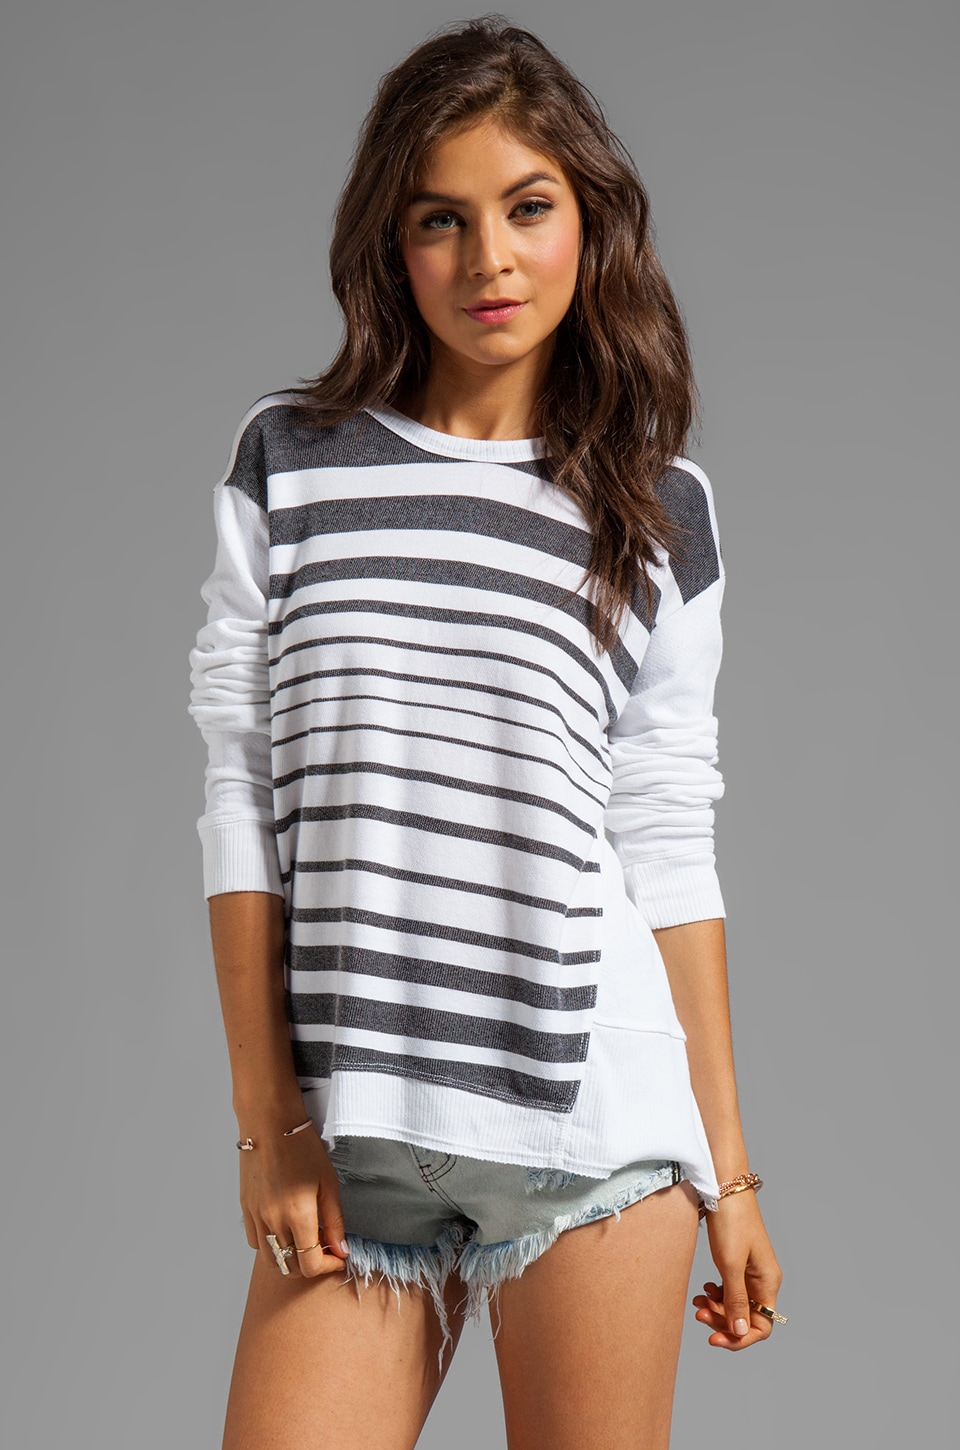 Wilt Fractured Stripe Back Slant Sweatshirt in White